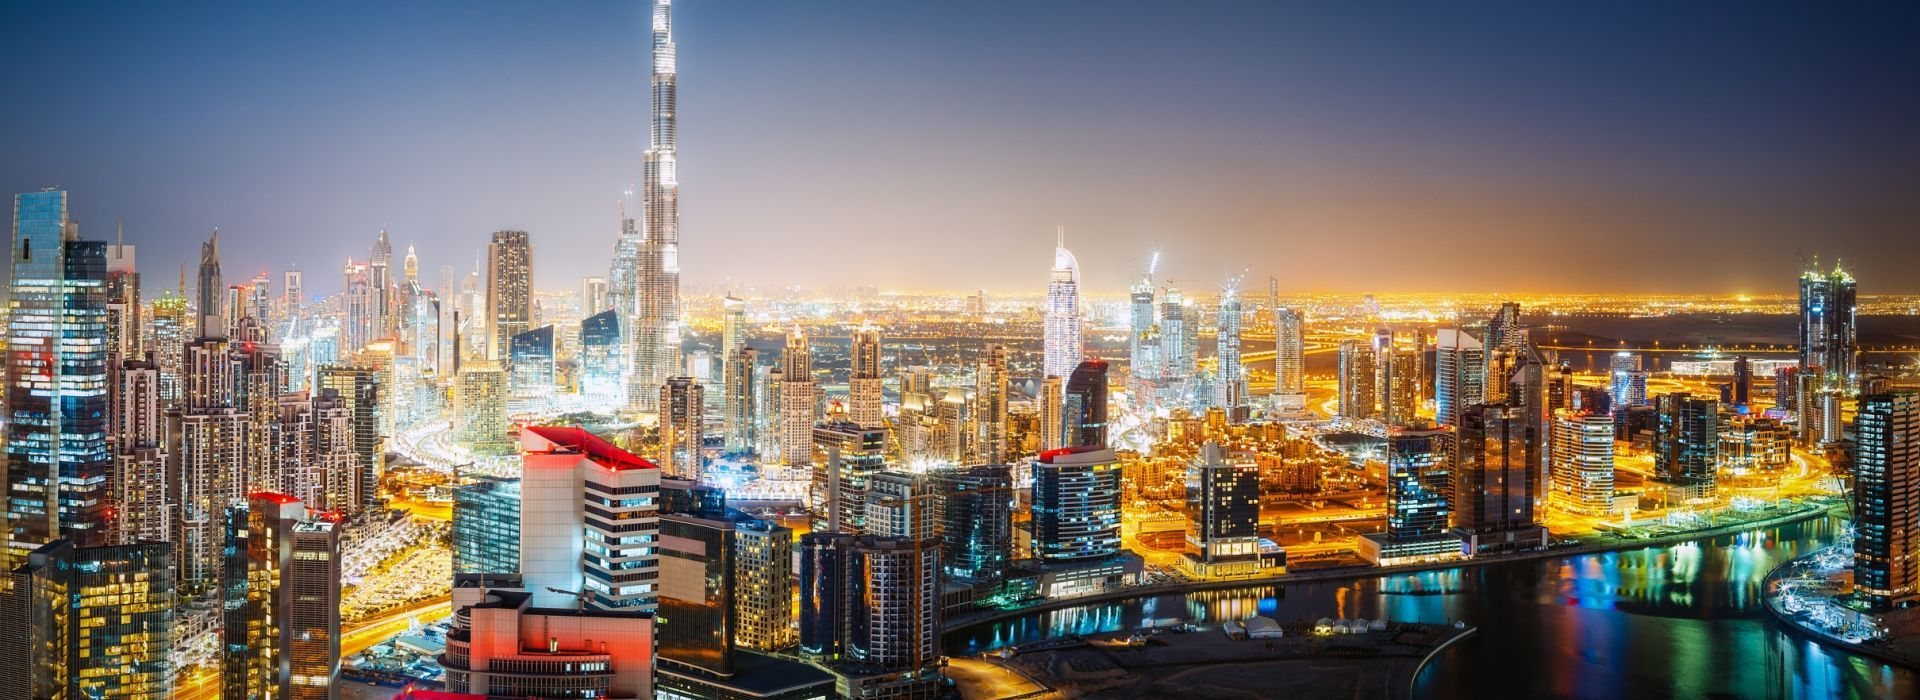 Art and architecture Tours in UAE